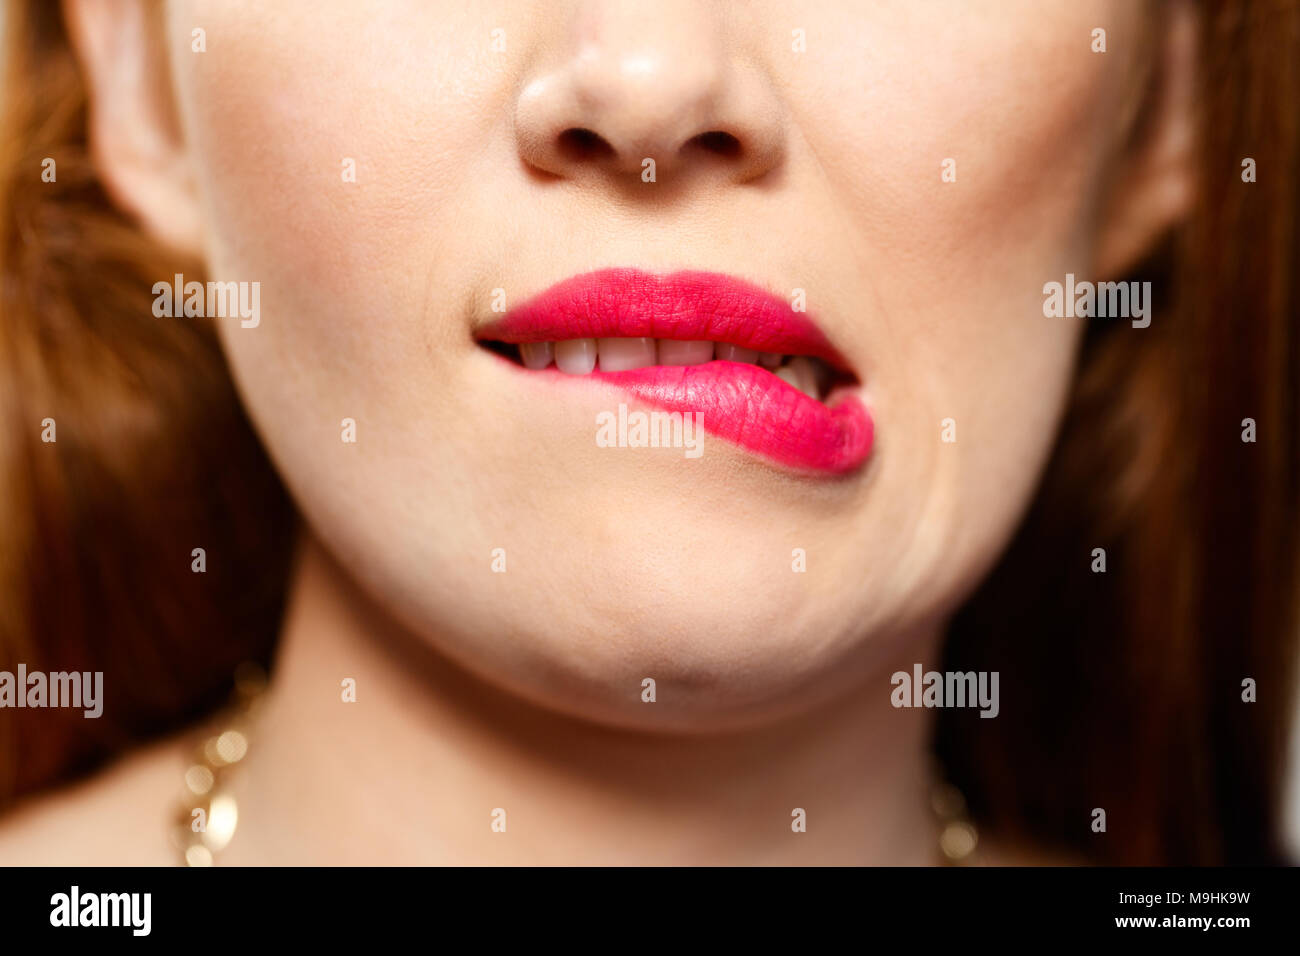 Facial Expressions Of Young Redhead Woman Closeup - Stock Image